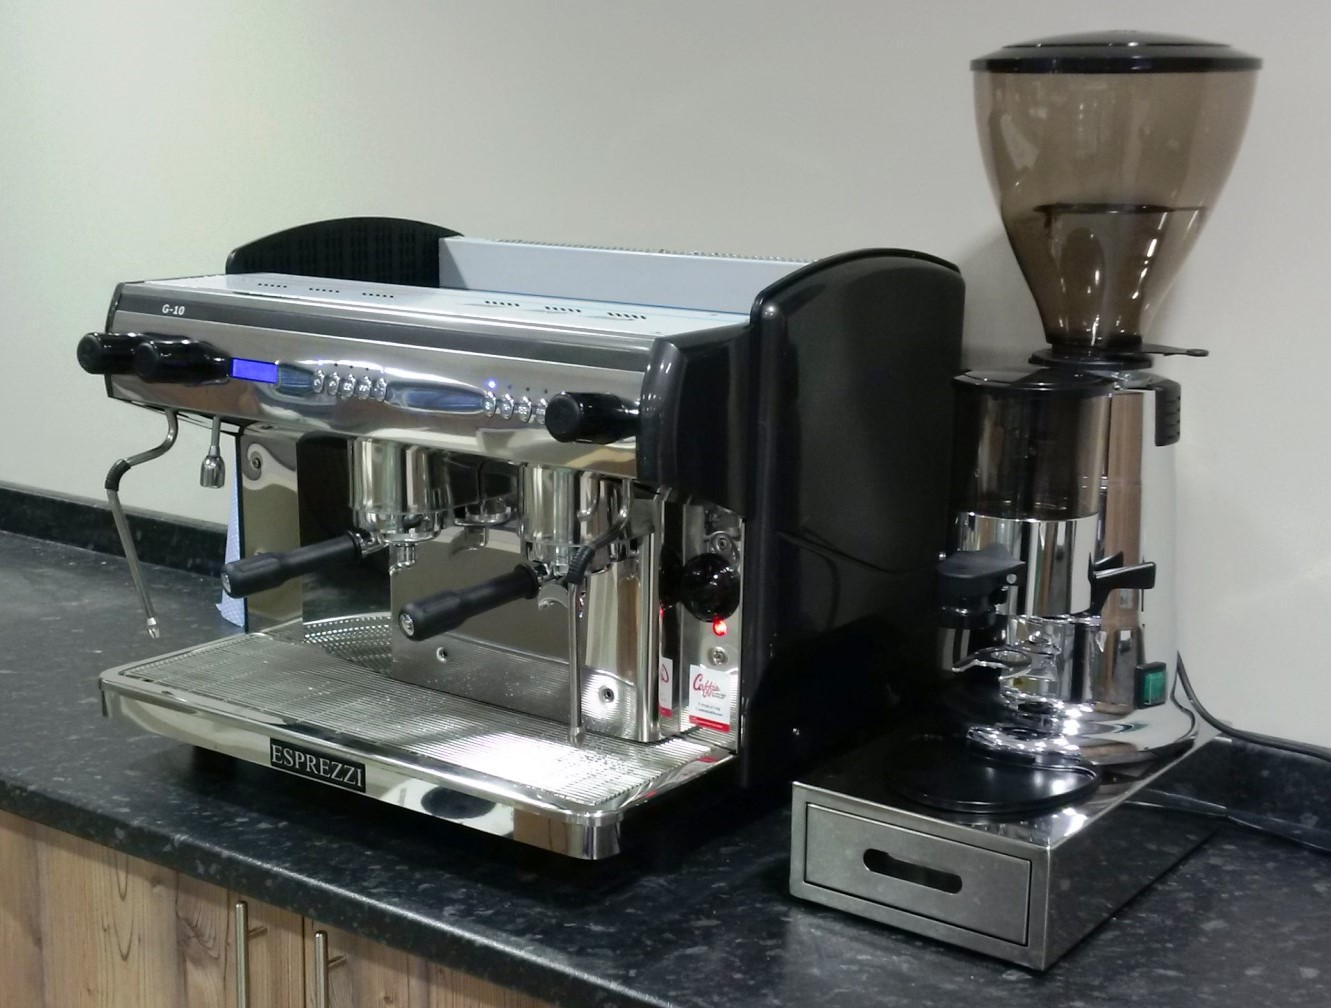 Esprezzi Ultra Espresso Coffee Machines